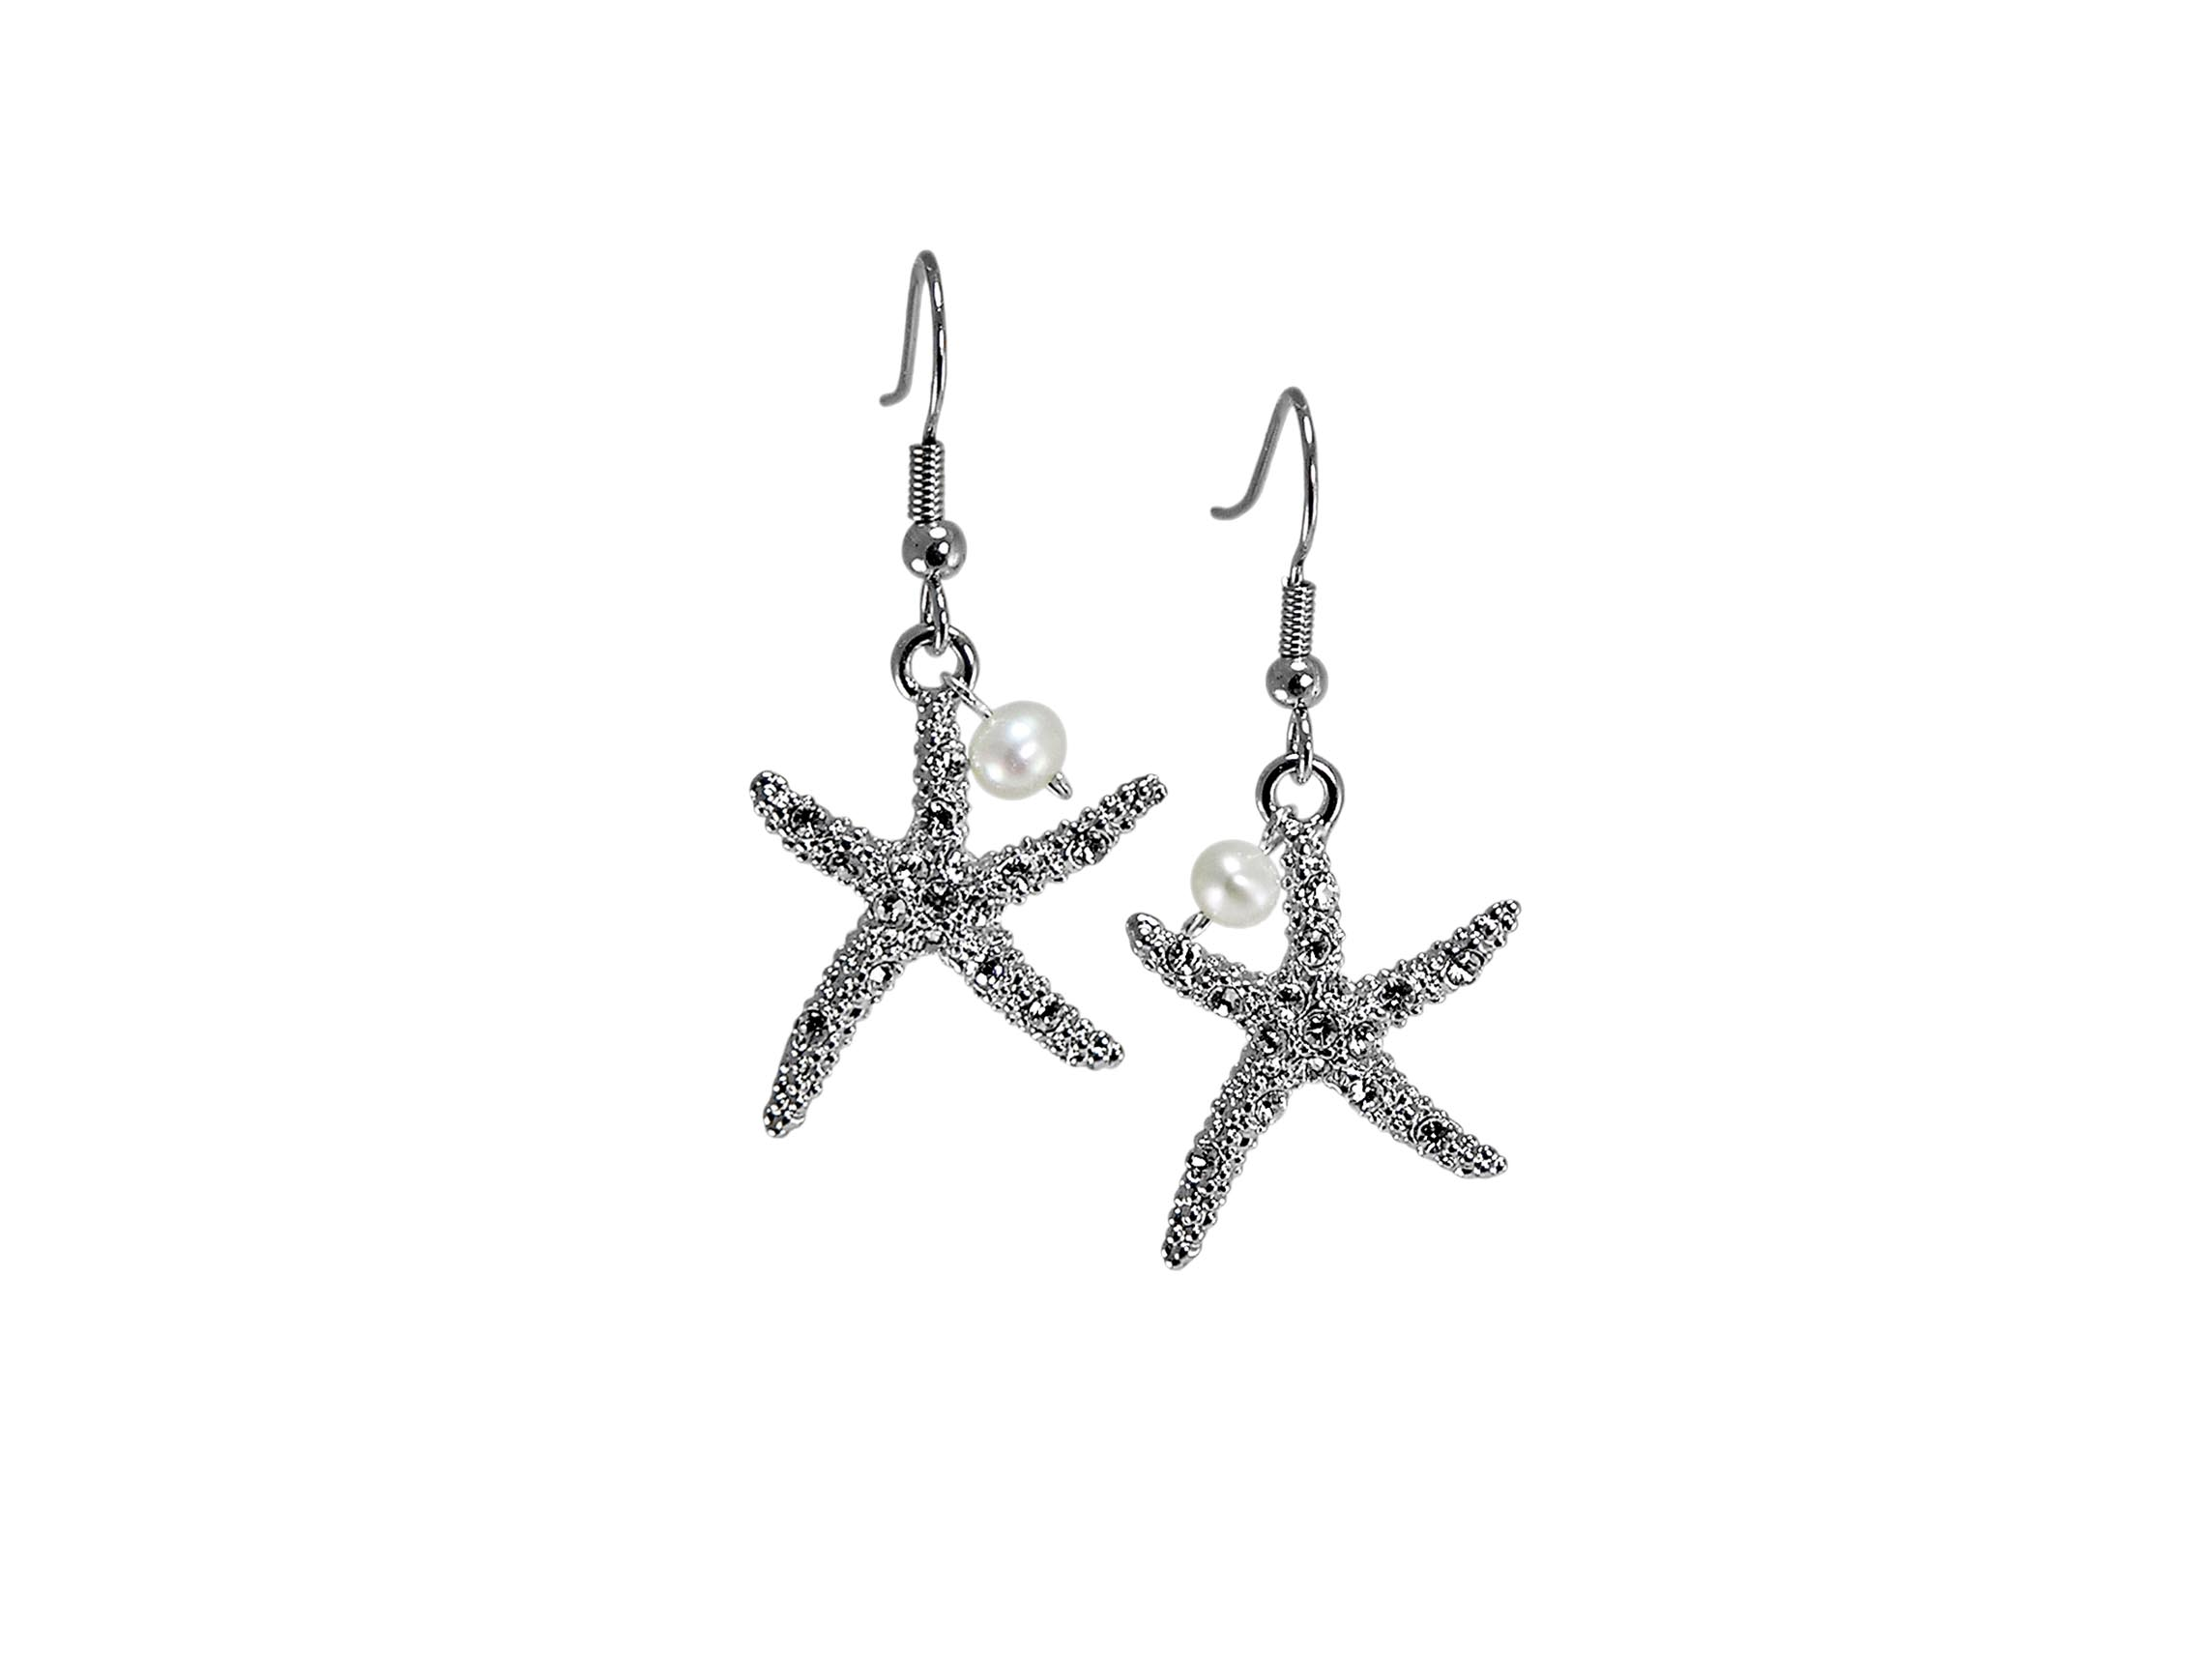 Swarovski Crystal Starfish Earrings